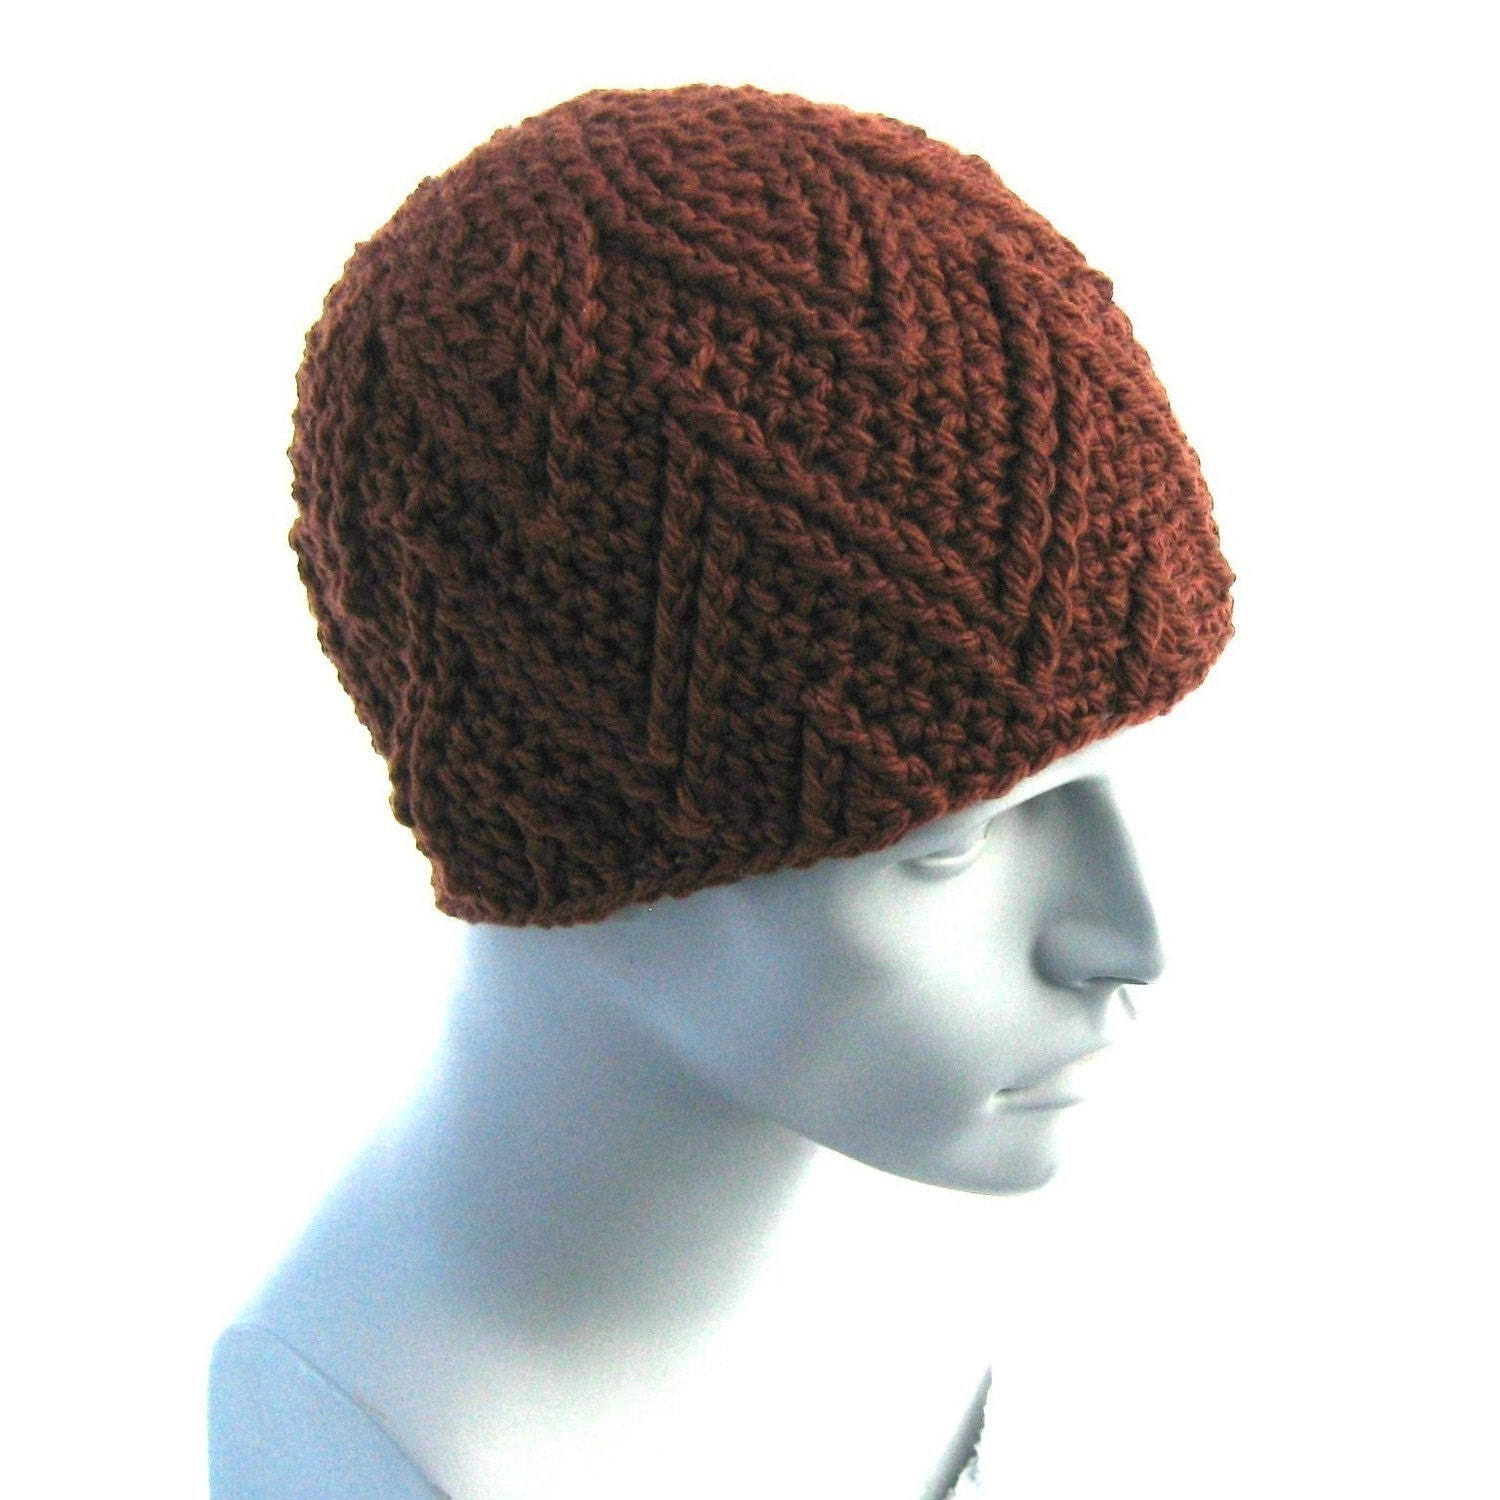 The Zig Beanie (AKA The Charlie Brown) - CROCHET PATTERN